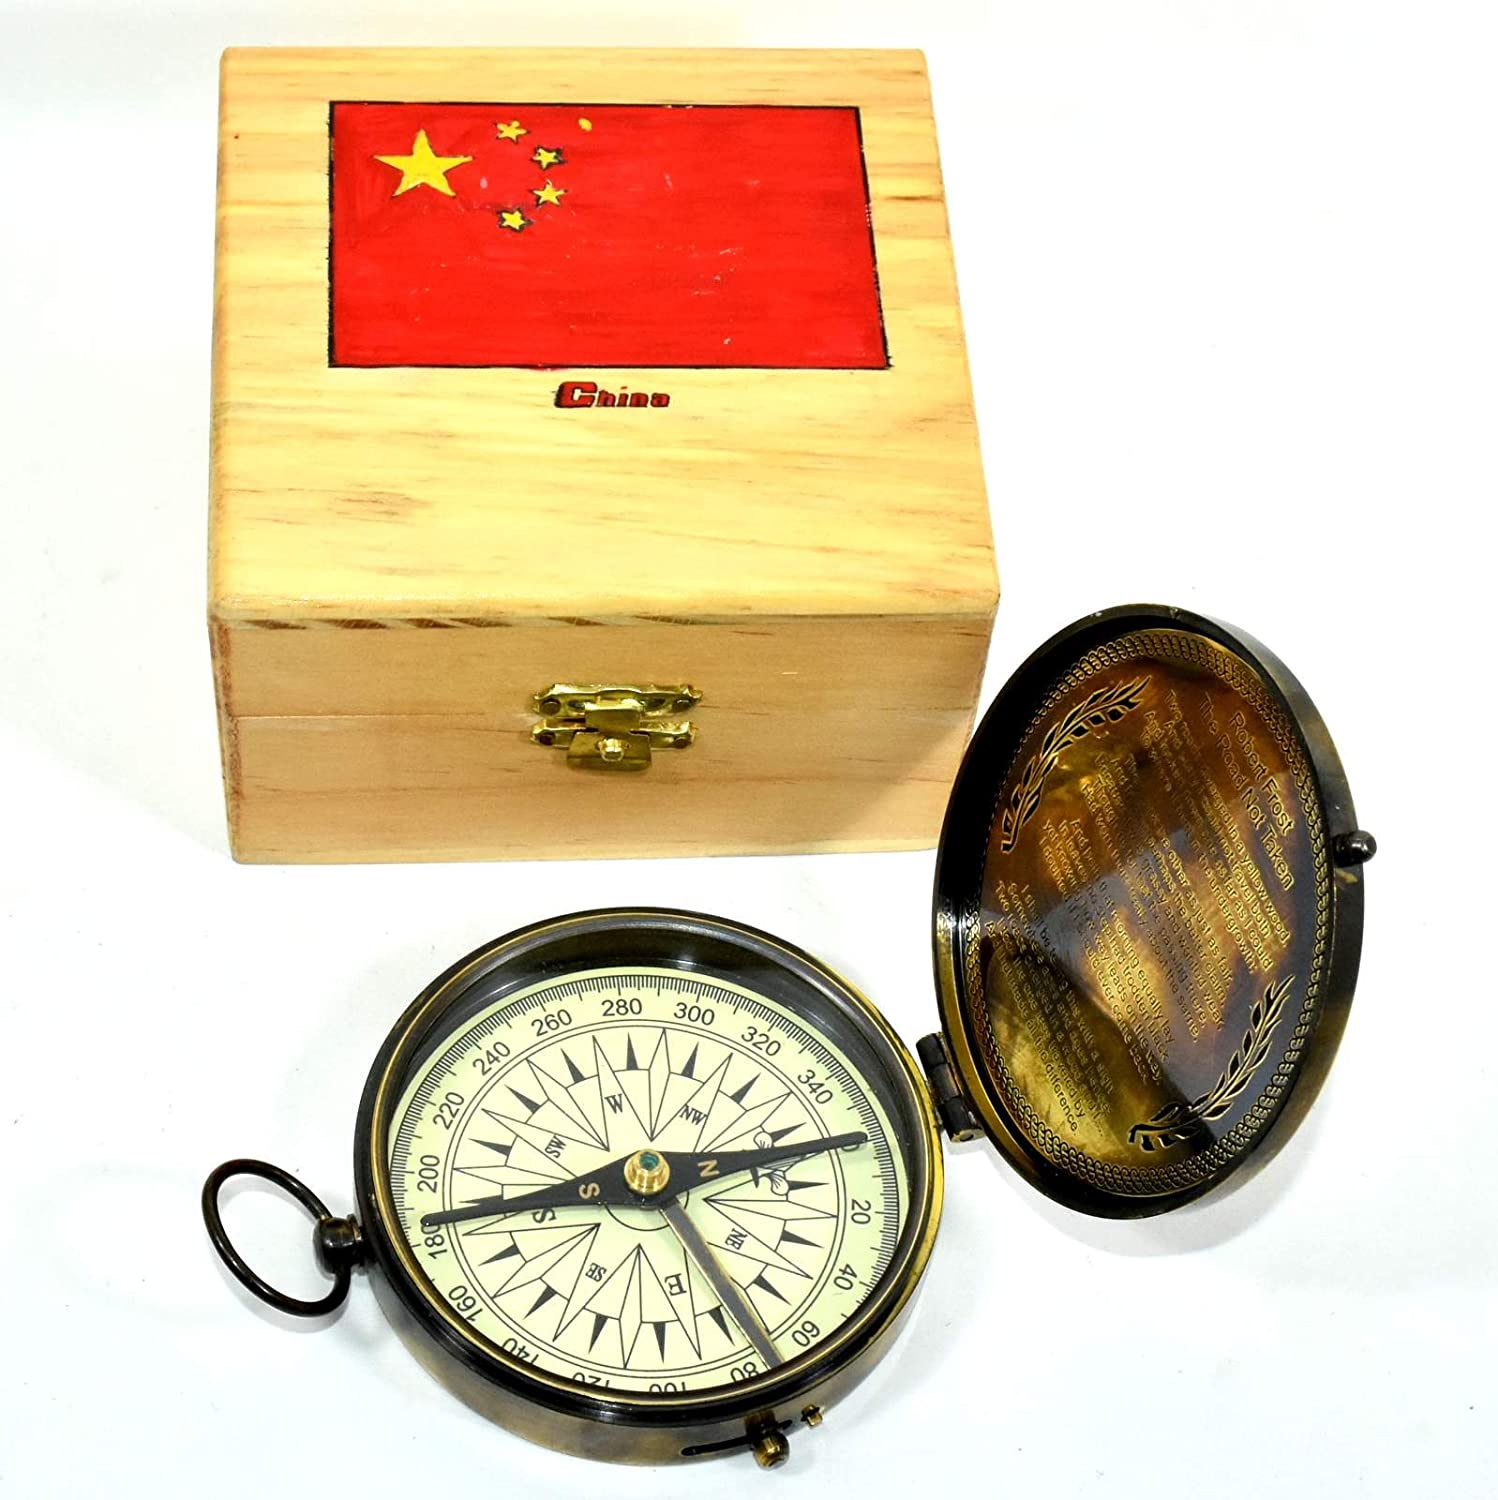 Eve.store HAG Nautical Compass Maritime Brass Flat Compass with Wooden Box Collectible Decor.XFGHFGF76